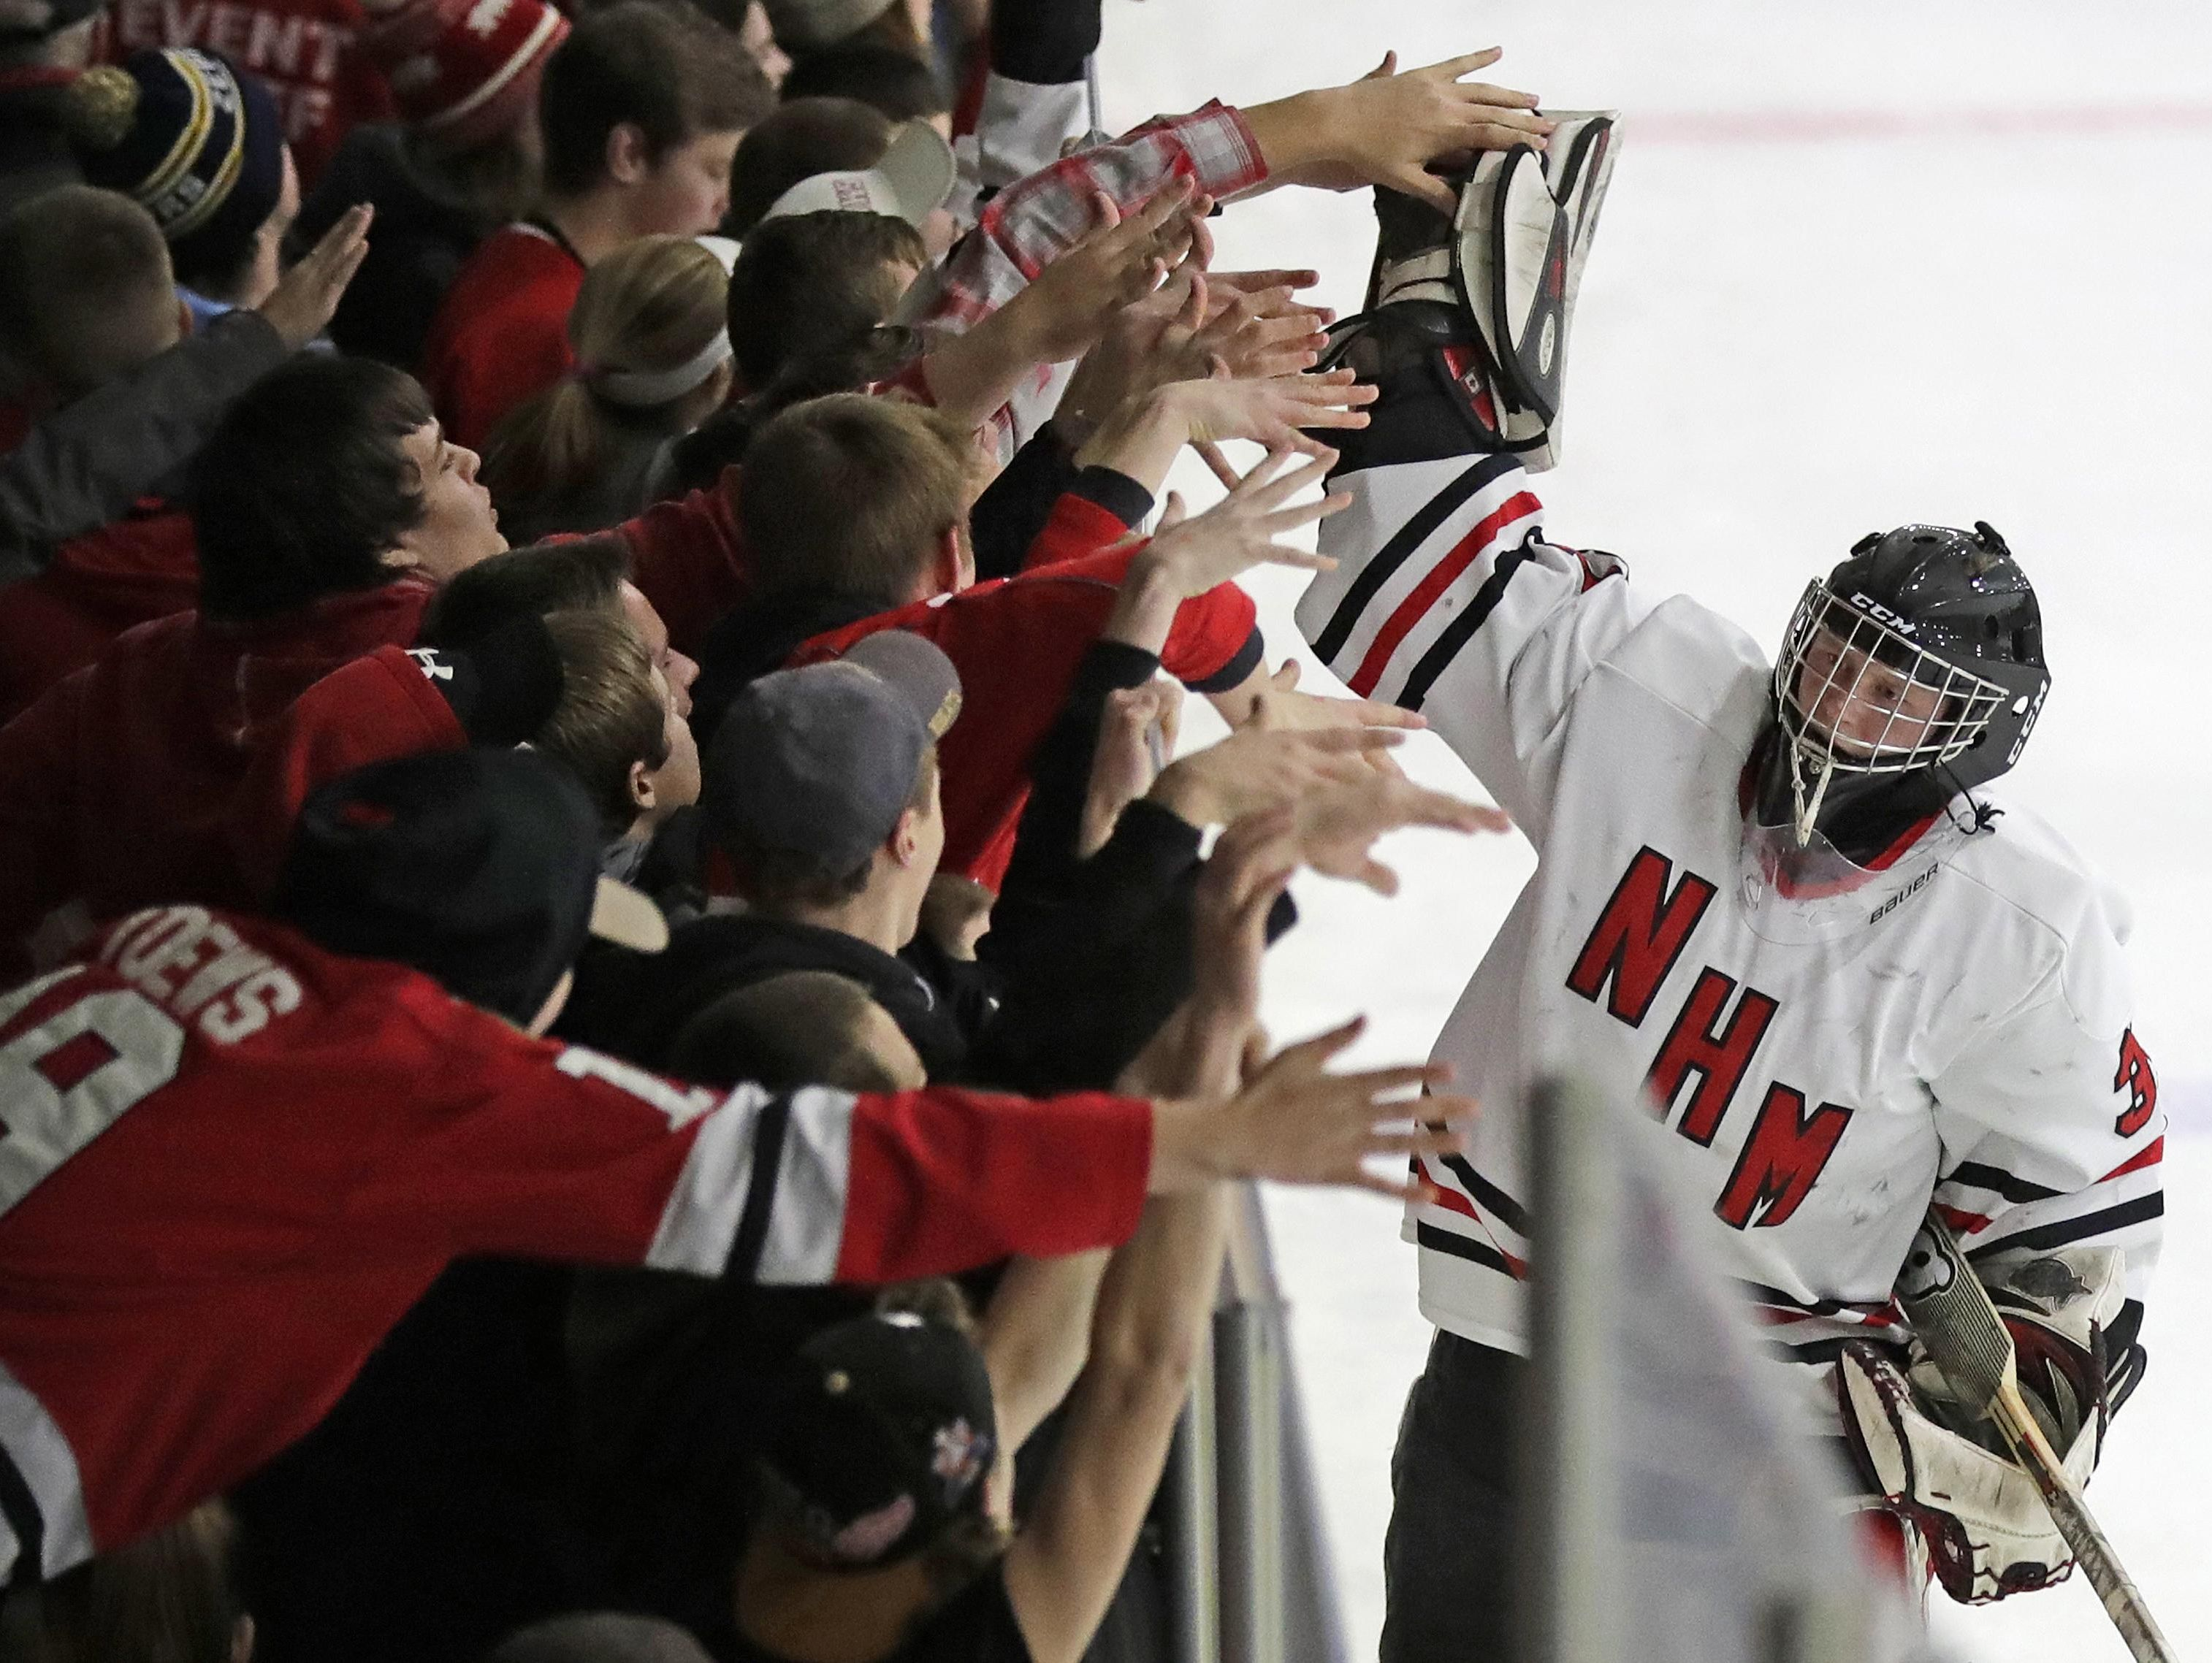 Neenah/Hortonville/Menasha goalie Preston Long high-fives fans after his team defeated Appleton United 4-0 on Tuesday in a WIAA sectional semifinal game at Tri-County Ice Arena in Fox Crossing. Long had 28 saves on the night.